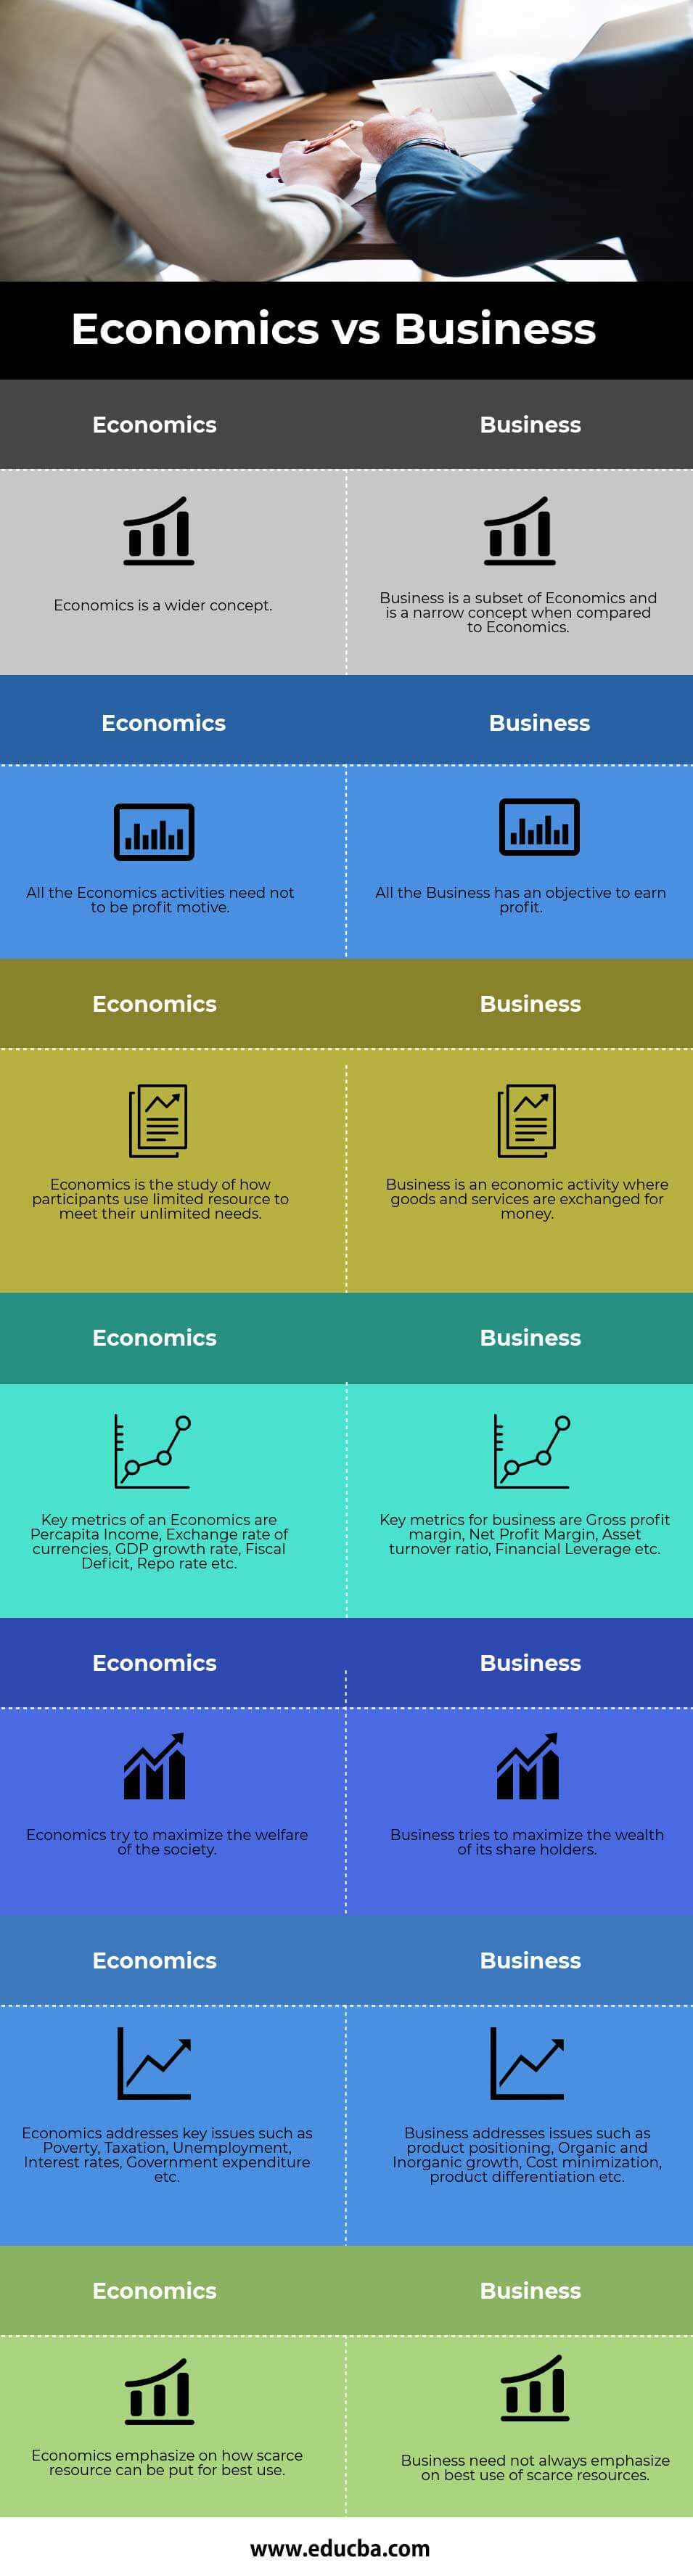 Economics vs Business info